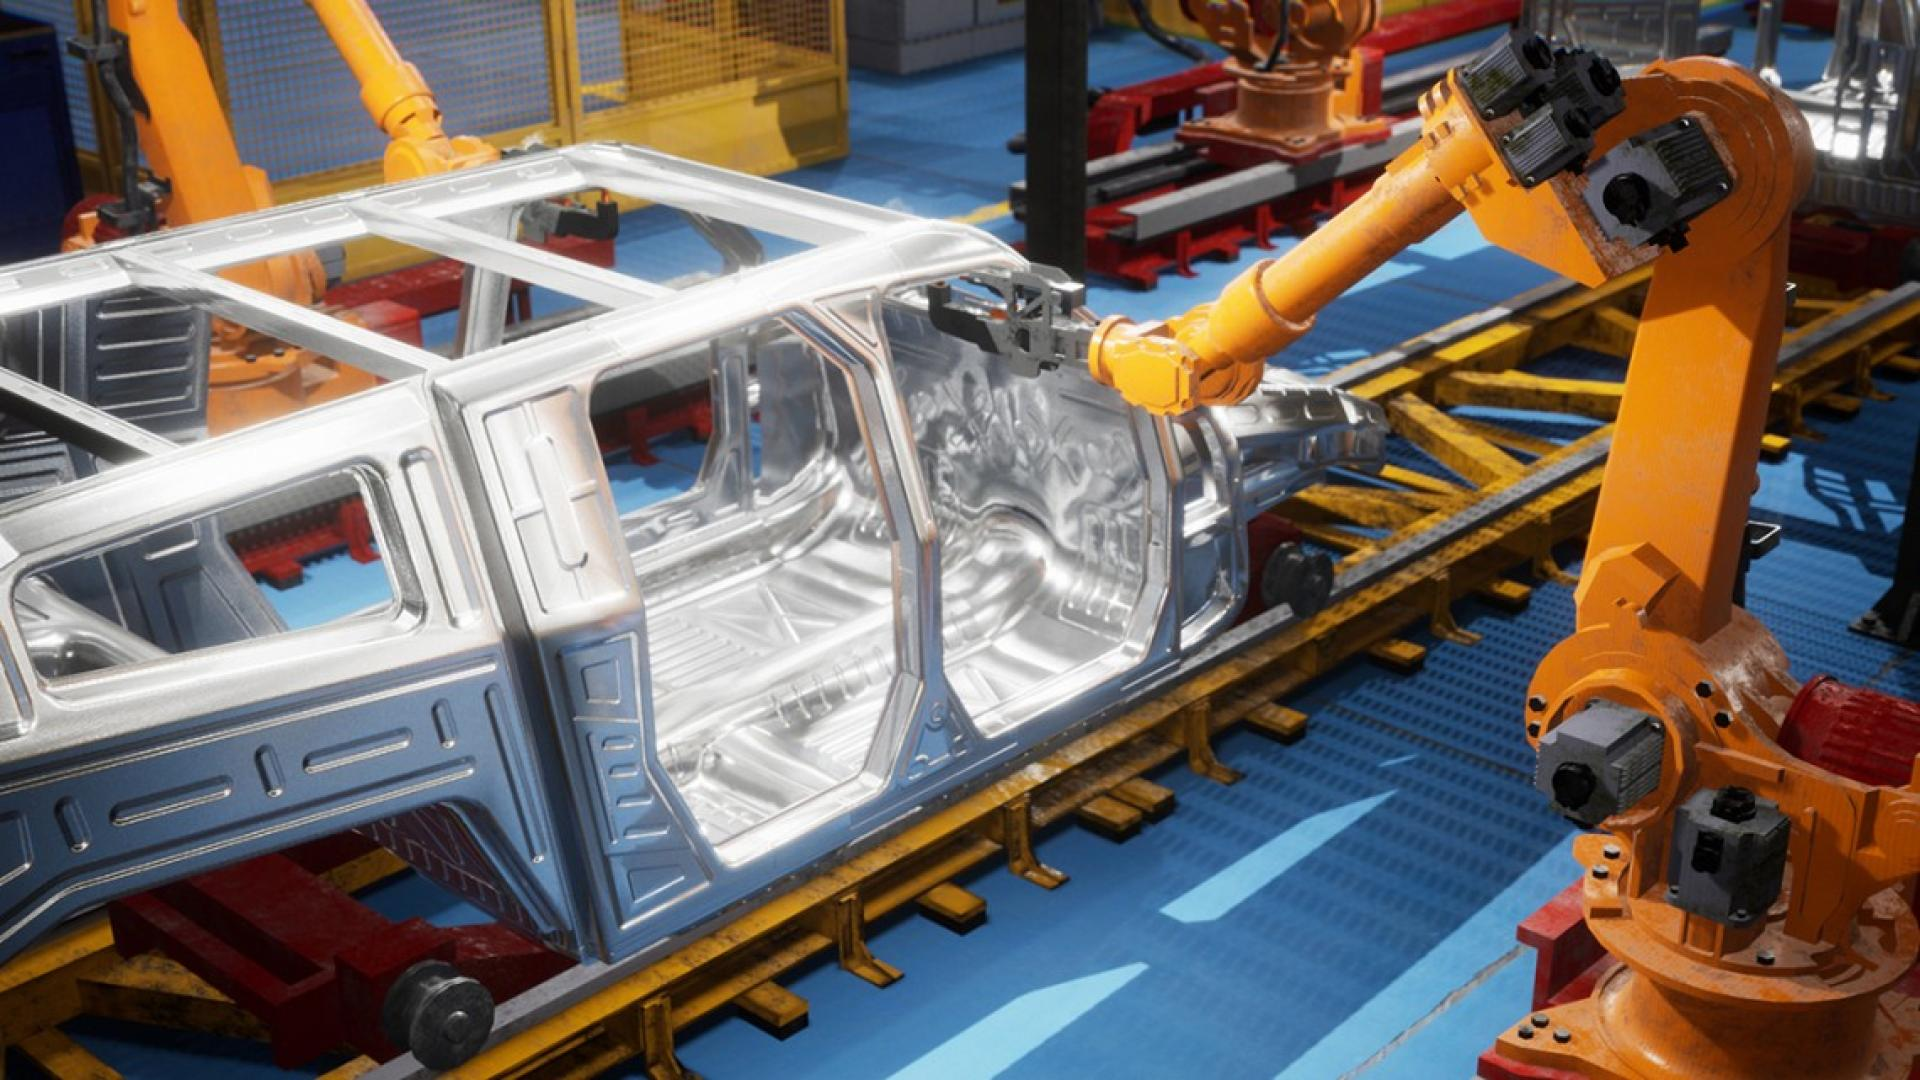 A robot welding together a car